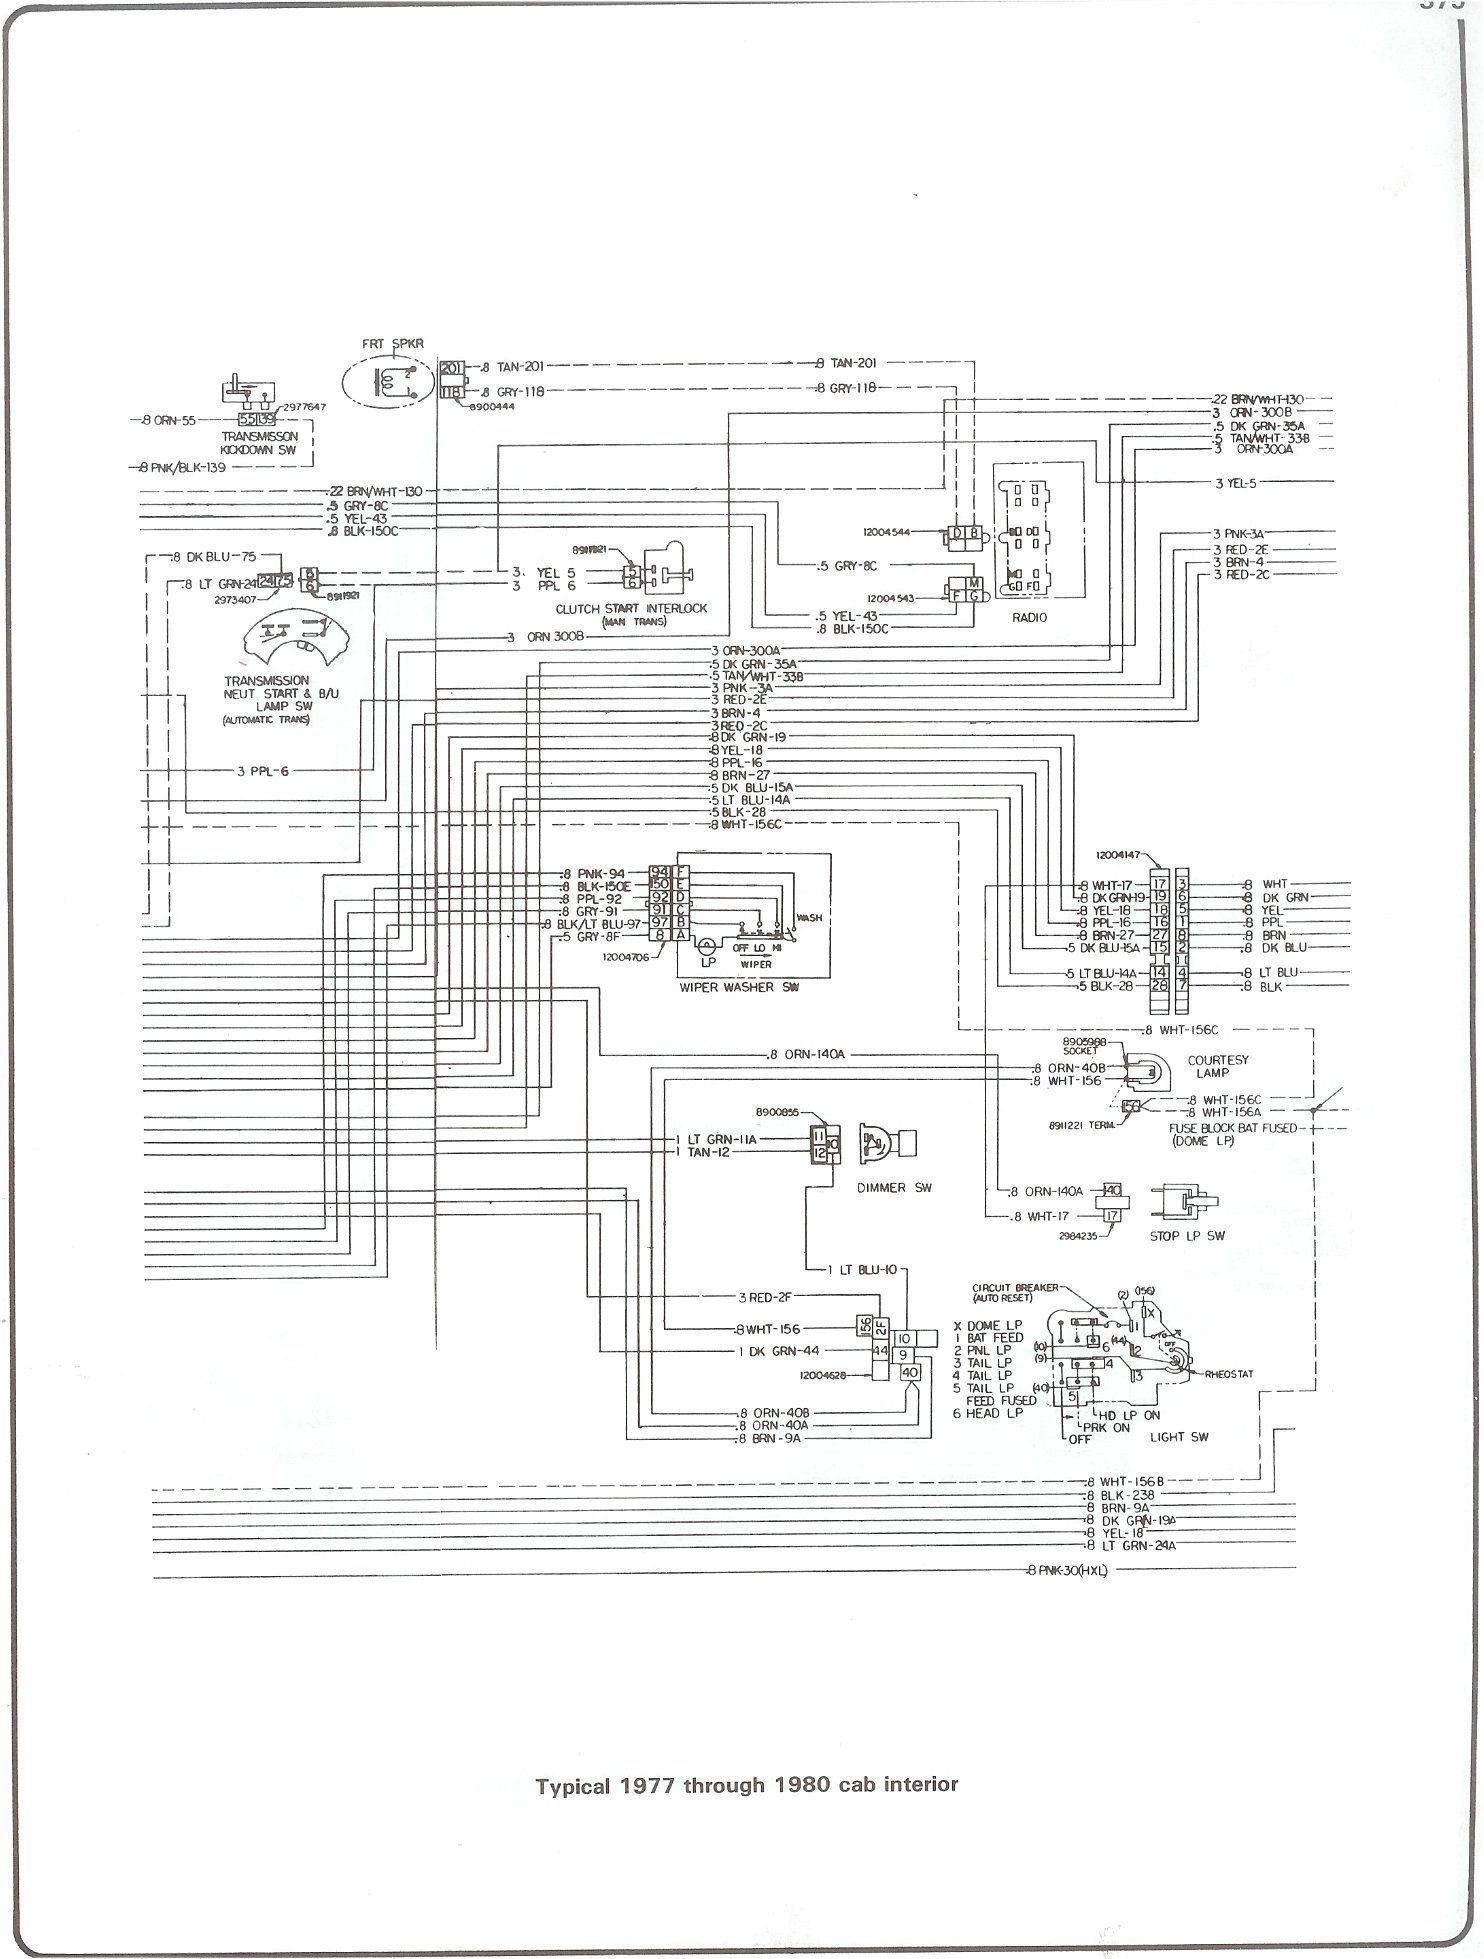 129 Diesel Belt Routing furthermore 153970 Wiring Harness Engine Lh8 5 3l Lh9 5 3p in addition 2005 Chevy Equinox Exhaust Parts Diagram Html besides Coloriage De Ramone additionally Schematics i. on chevrolet impala